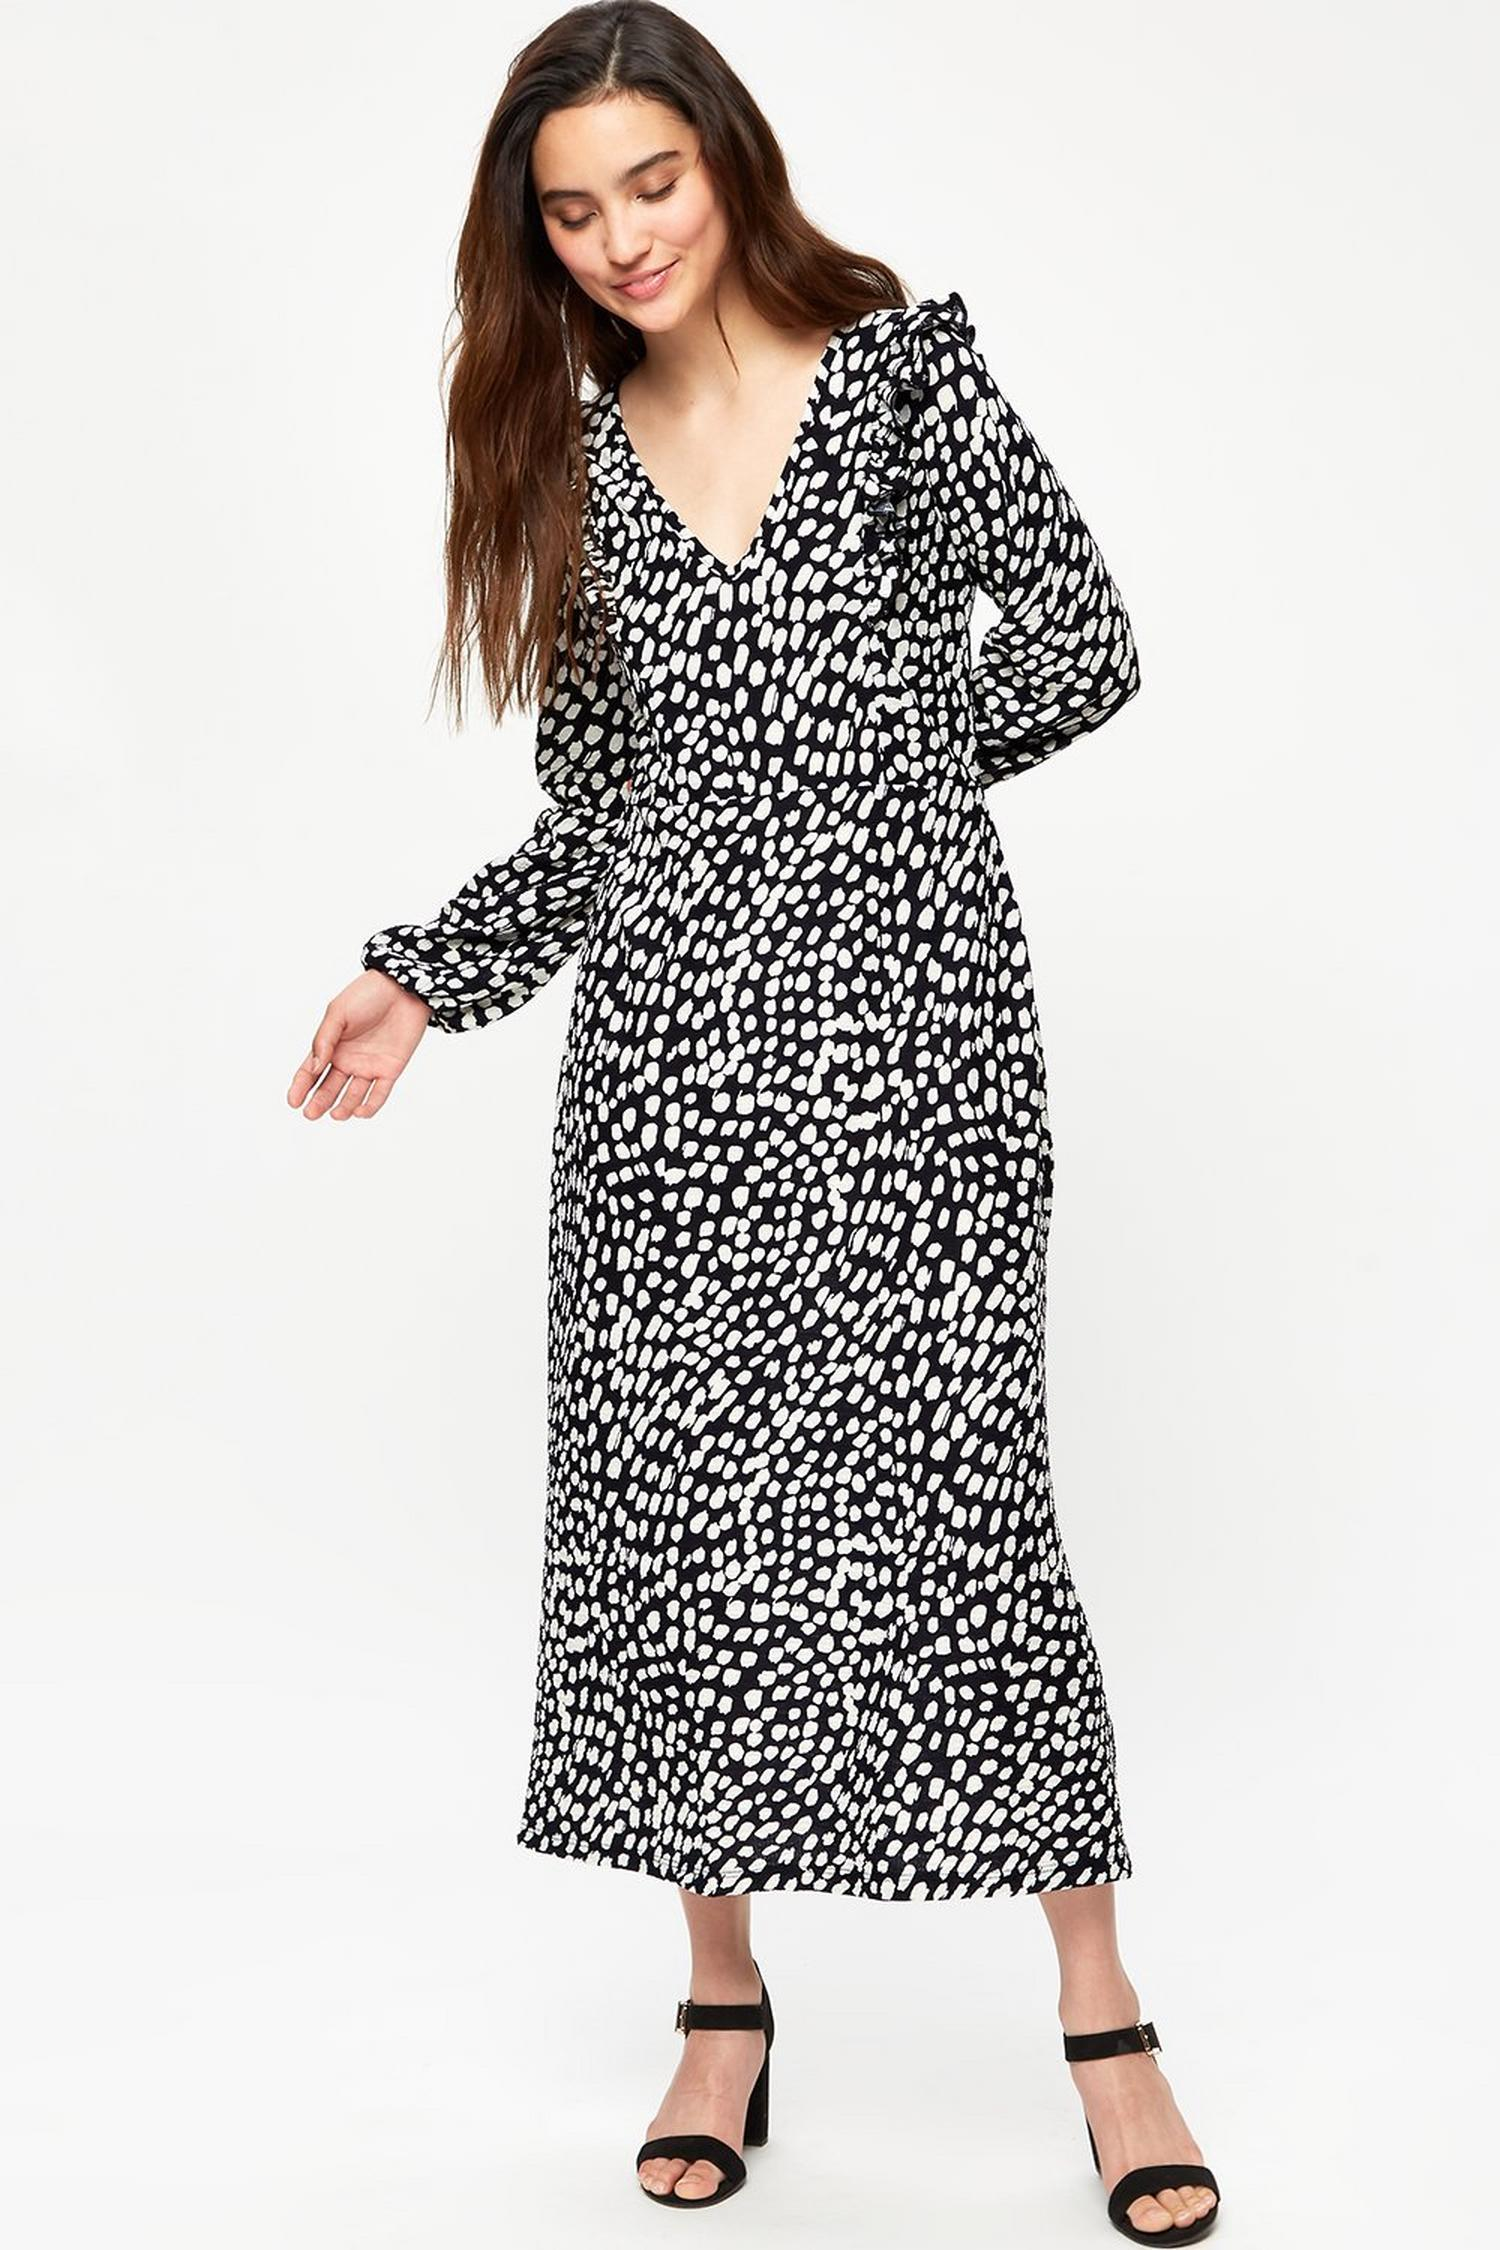 105 Petite Black And White Spot Midi Dress image number 1